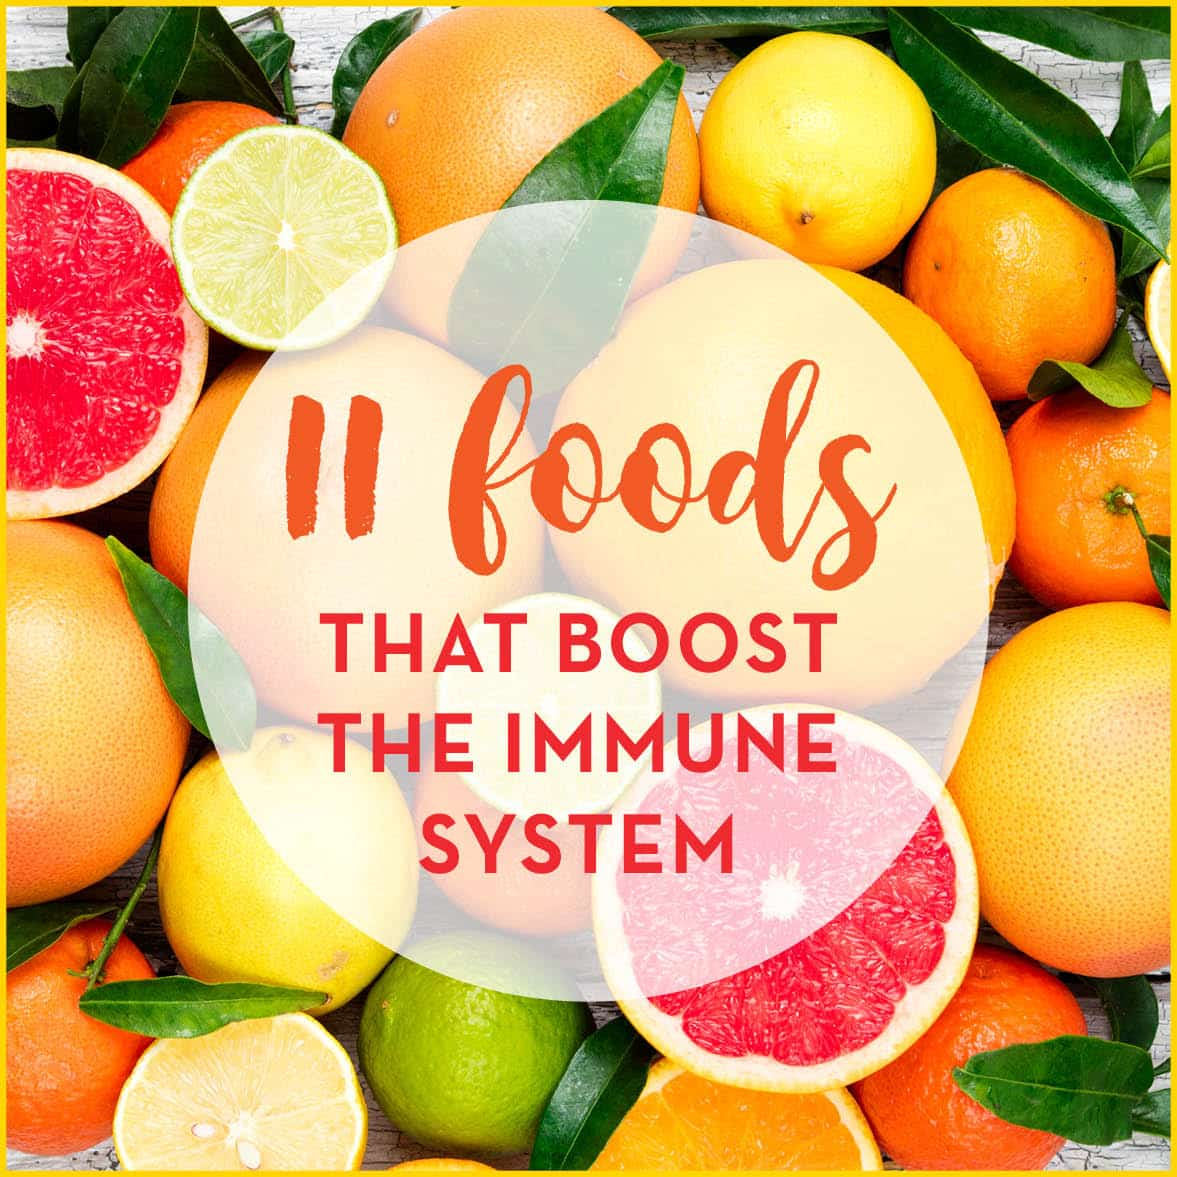 "Citrus fruits cut and whole as background for text: ""11 Foods That Boost The Immune System"""